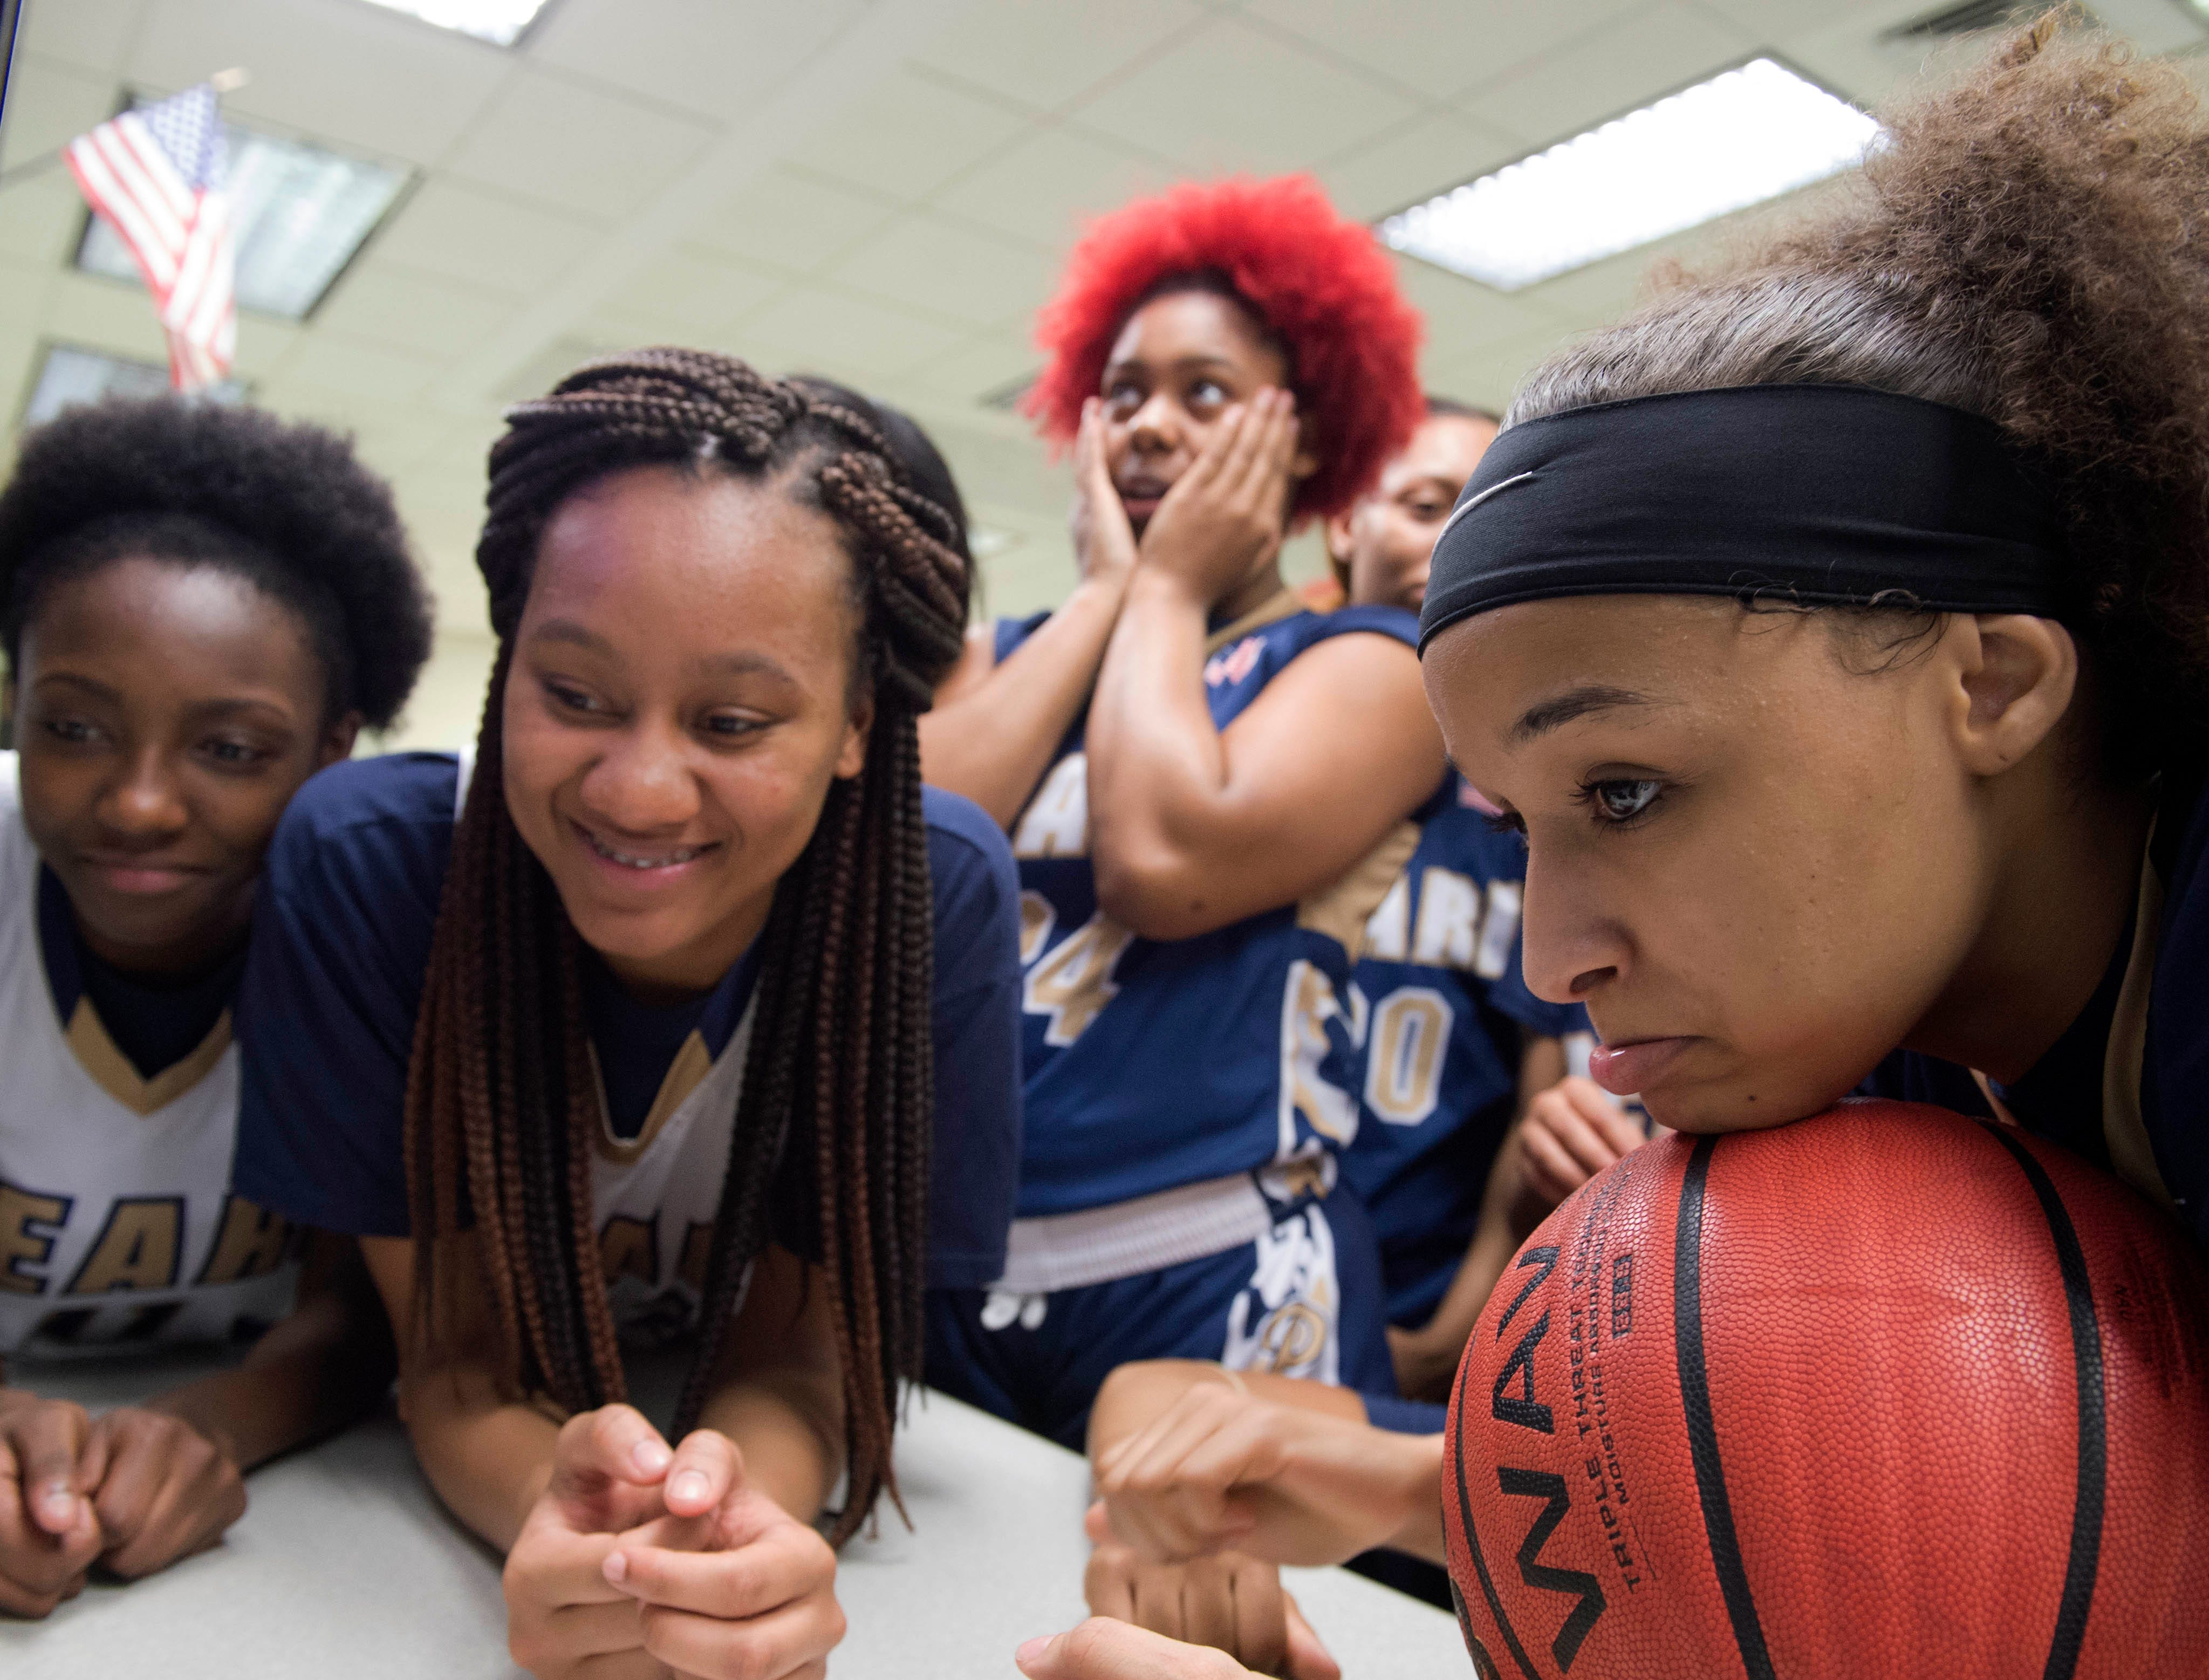 Pearl High School girls varsity basketball players talk with coach Lacey Kennedy via FaceTime video. Coach Kennedy is currently deployed with the U.S. Army reserve in the middle east. Kennedy's husband, Jason Kennedy, has taken on the role of head coach while Mrs. Kennedy is away. Mr. Kennedy serves as assistant coach for the team when both are home. Thursday, Feb. 21, 2019 in Pearl, Miss.